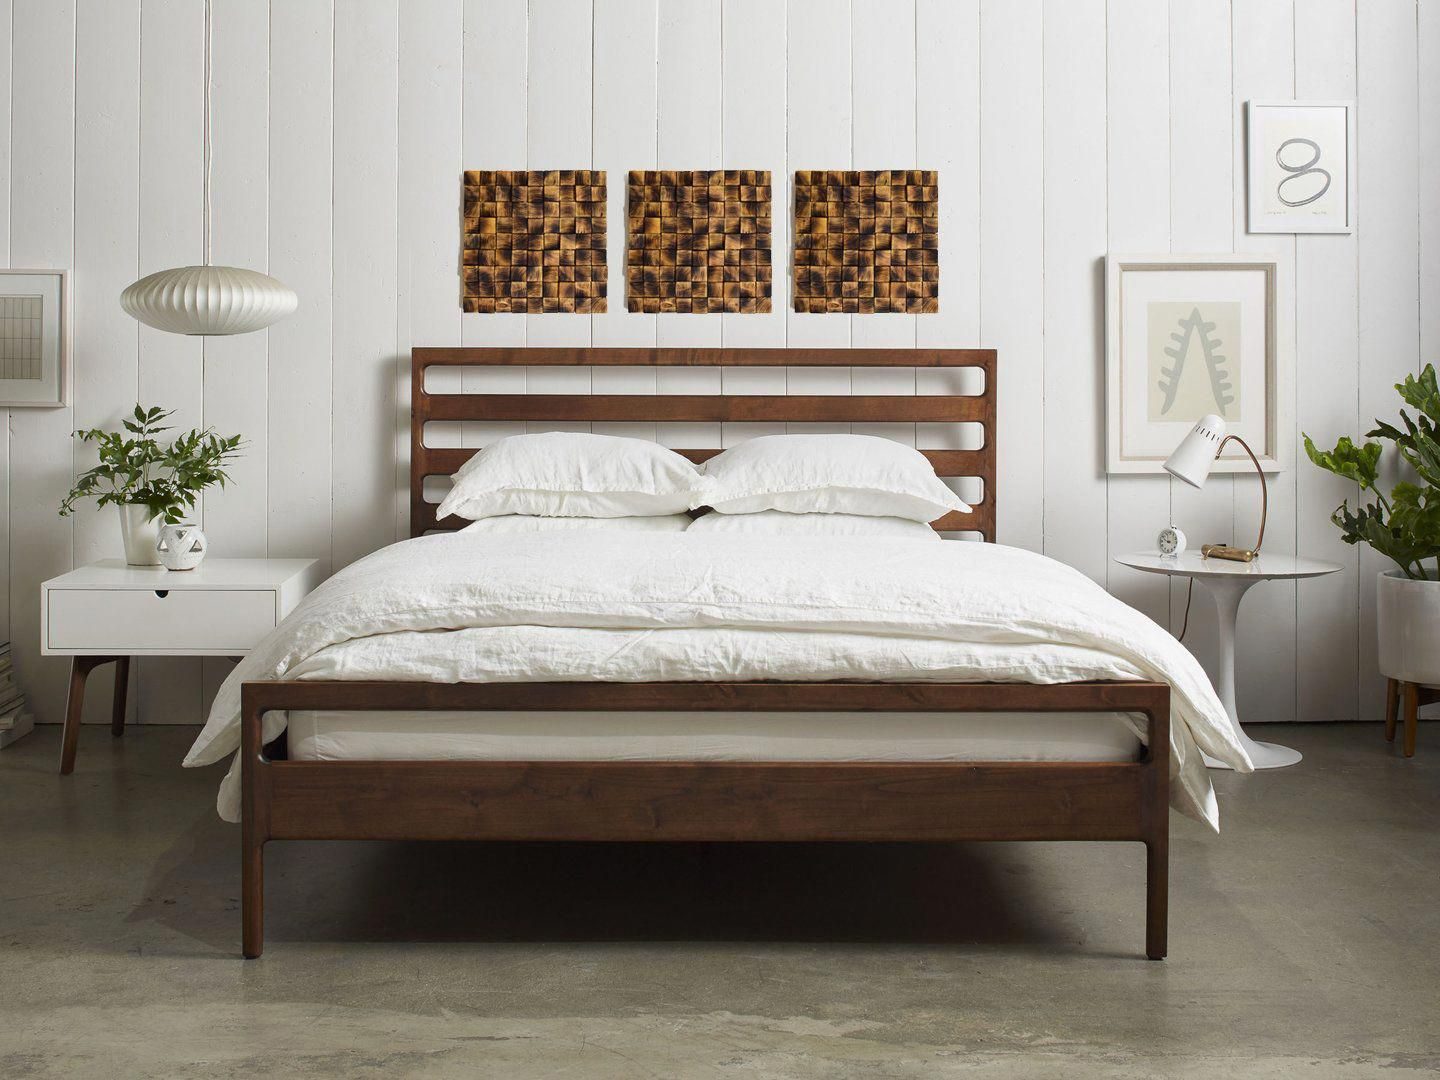 I have not considered this before. bedroom furniture